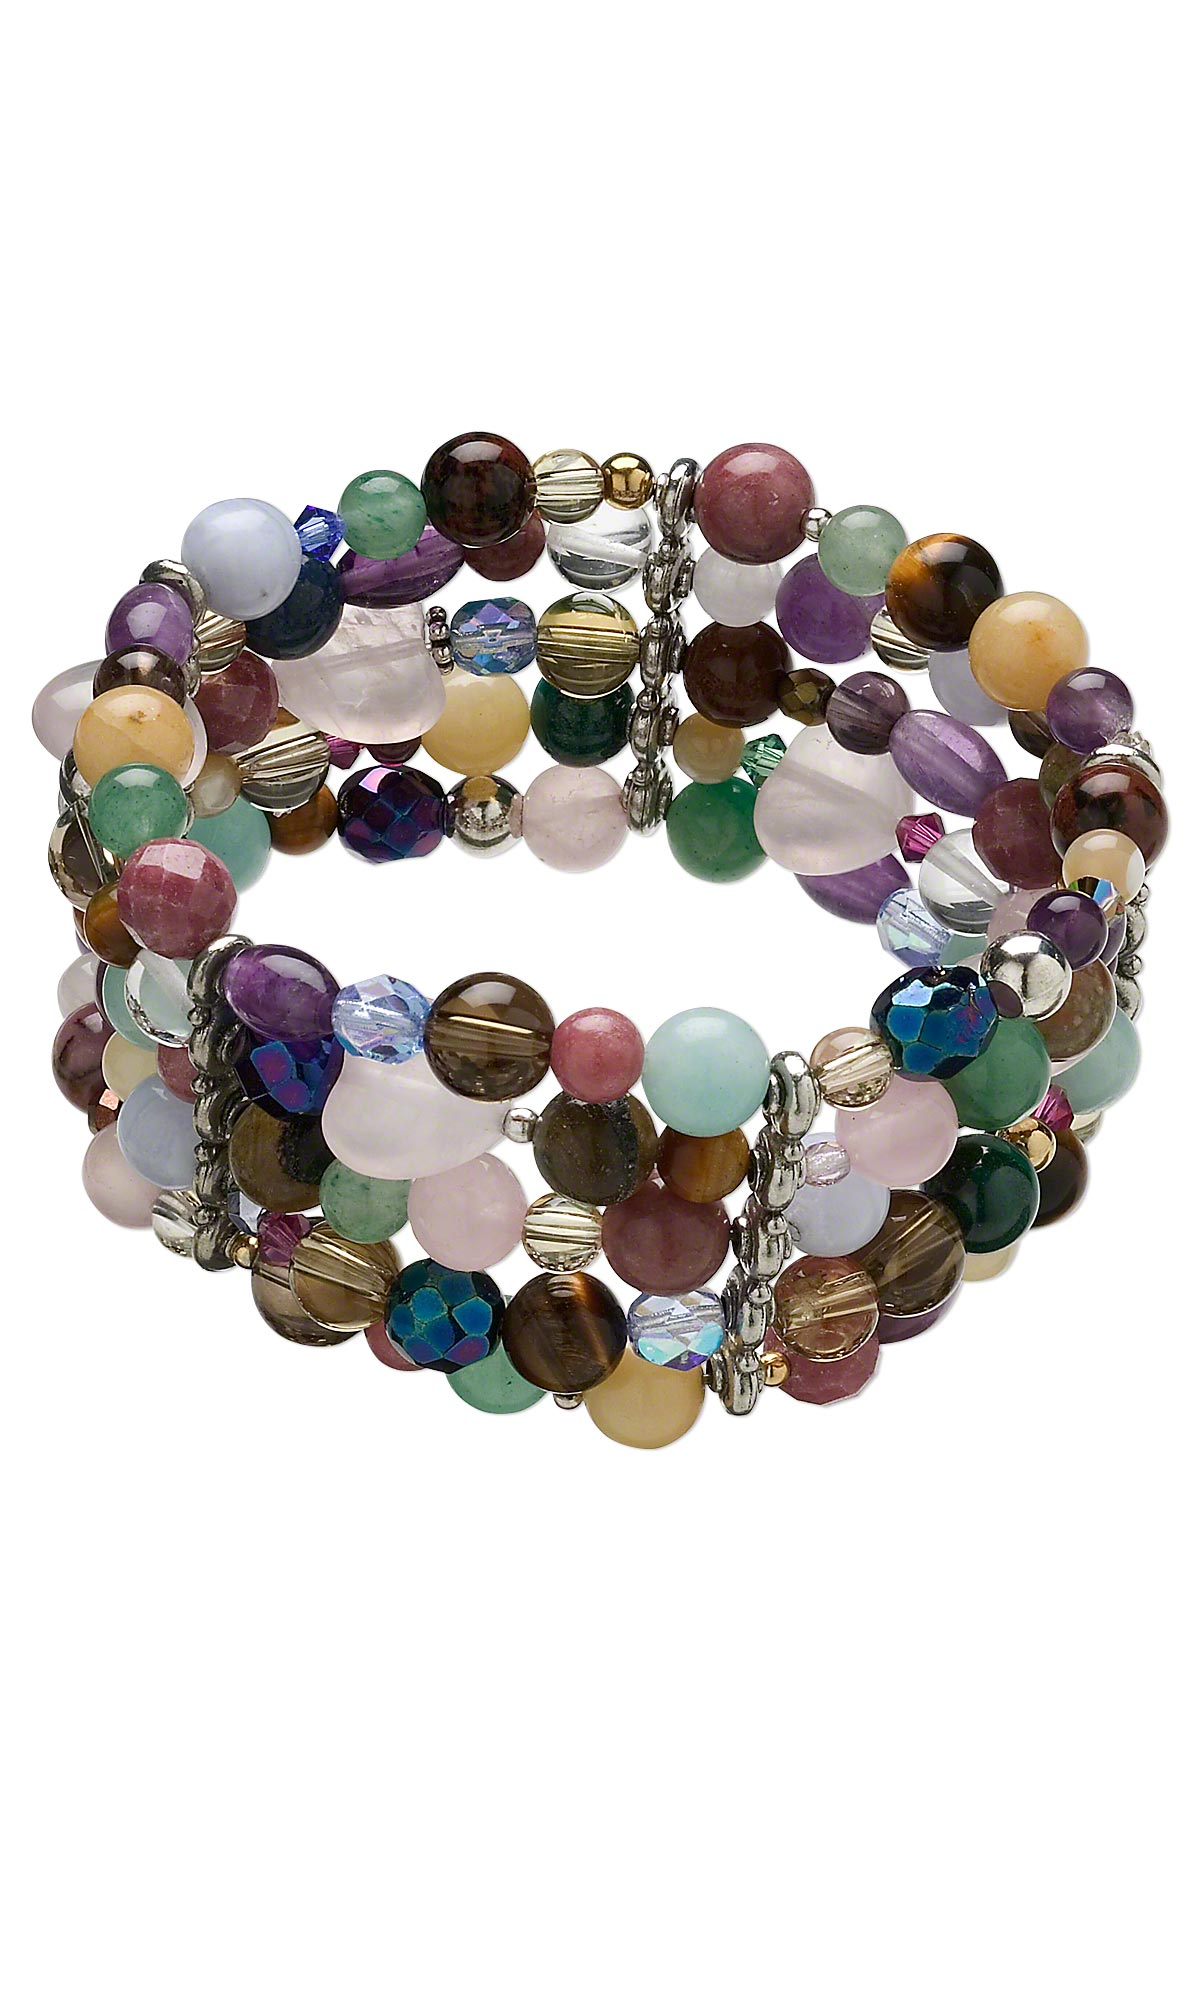 Jewelry Design Multi Strand Bracelet With Assorted